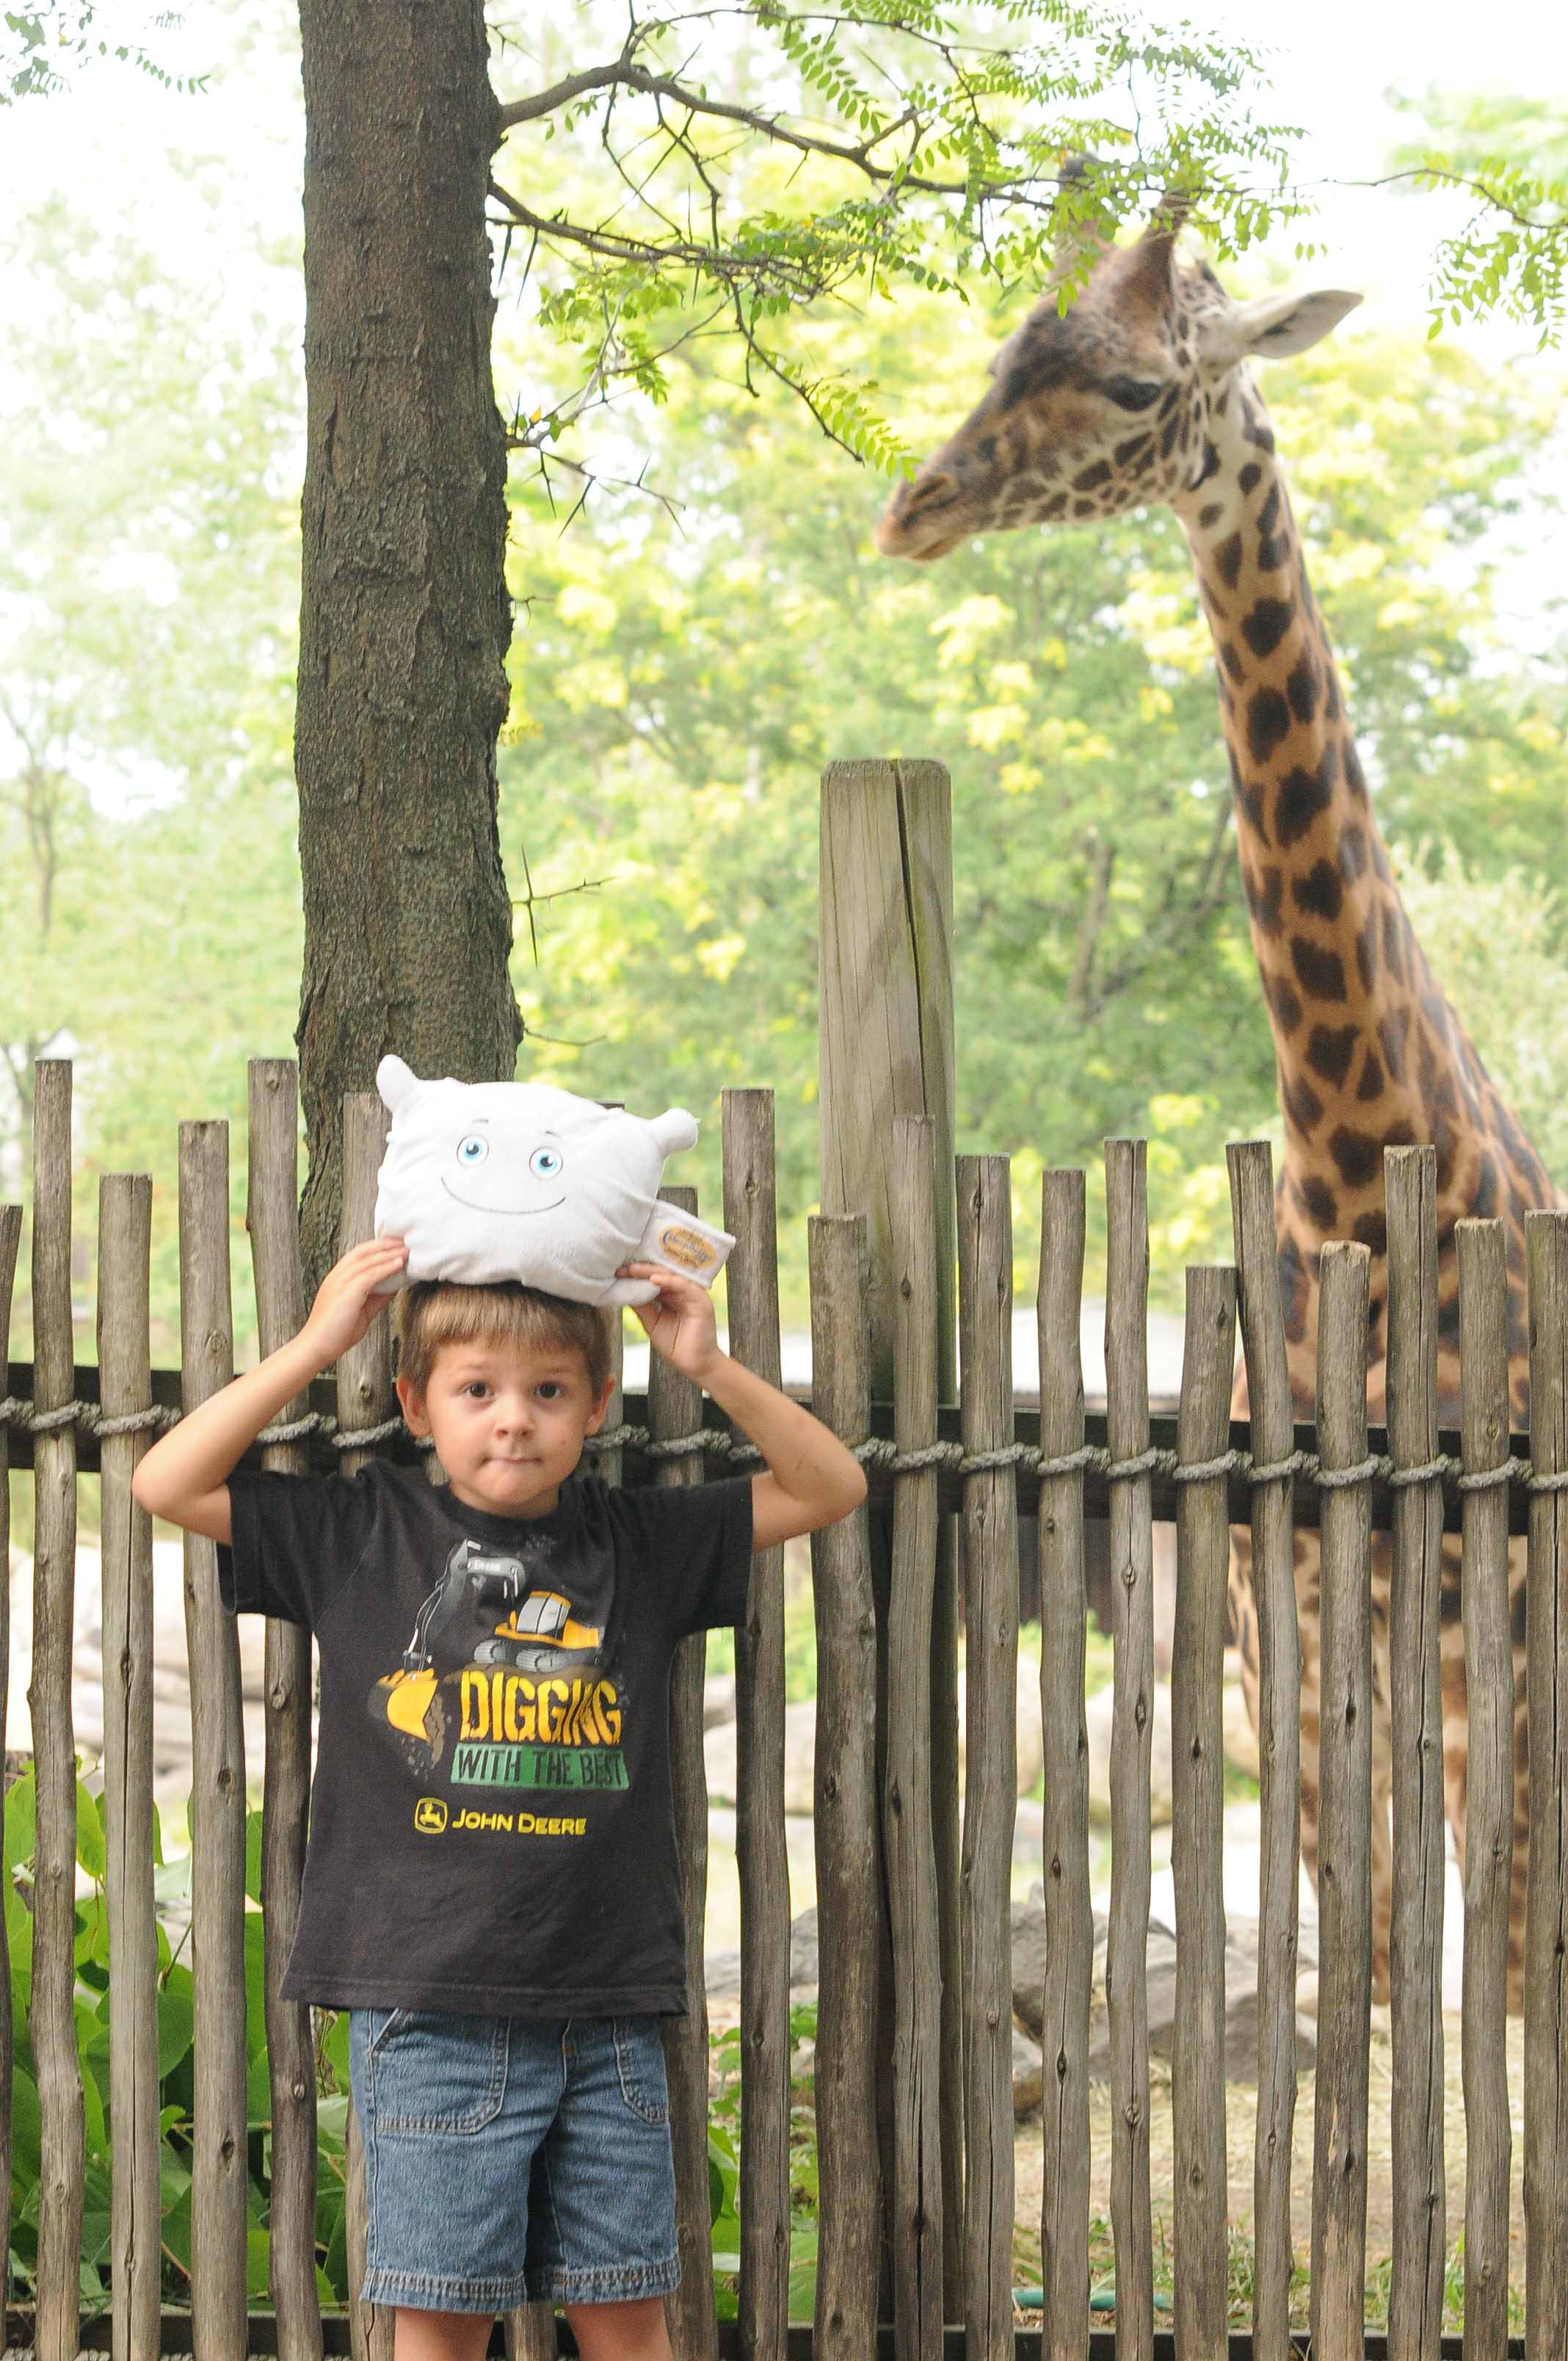 Pillow Featherbed tries to avoid being eaten by a giraffe